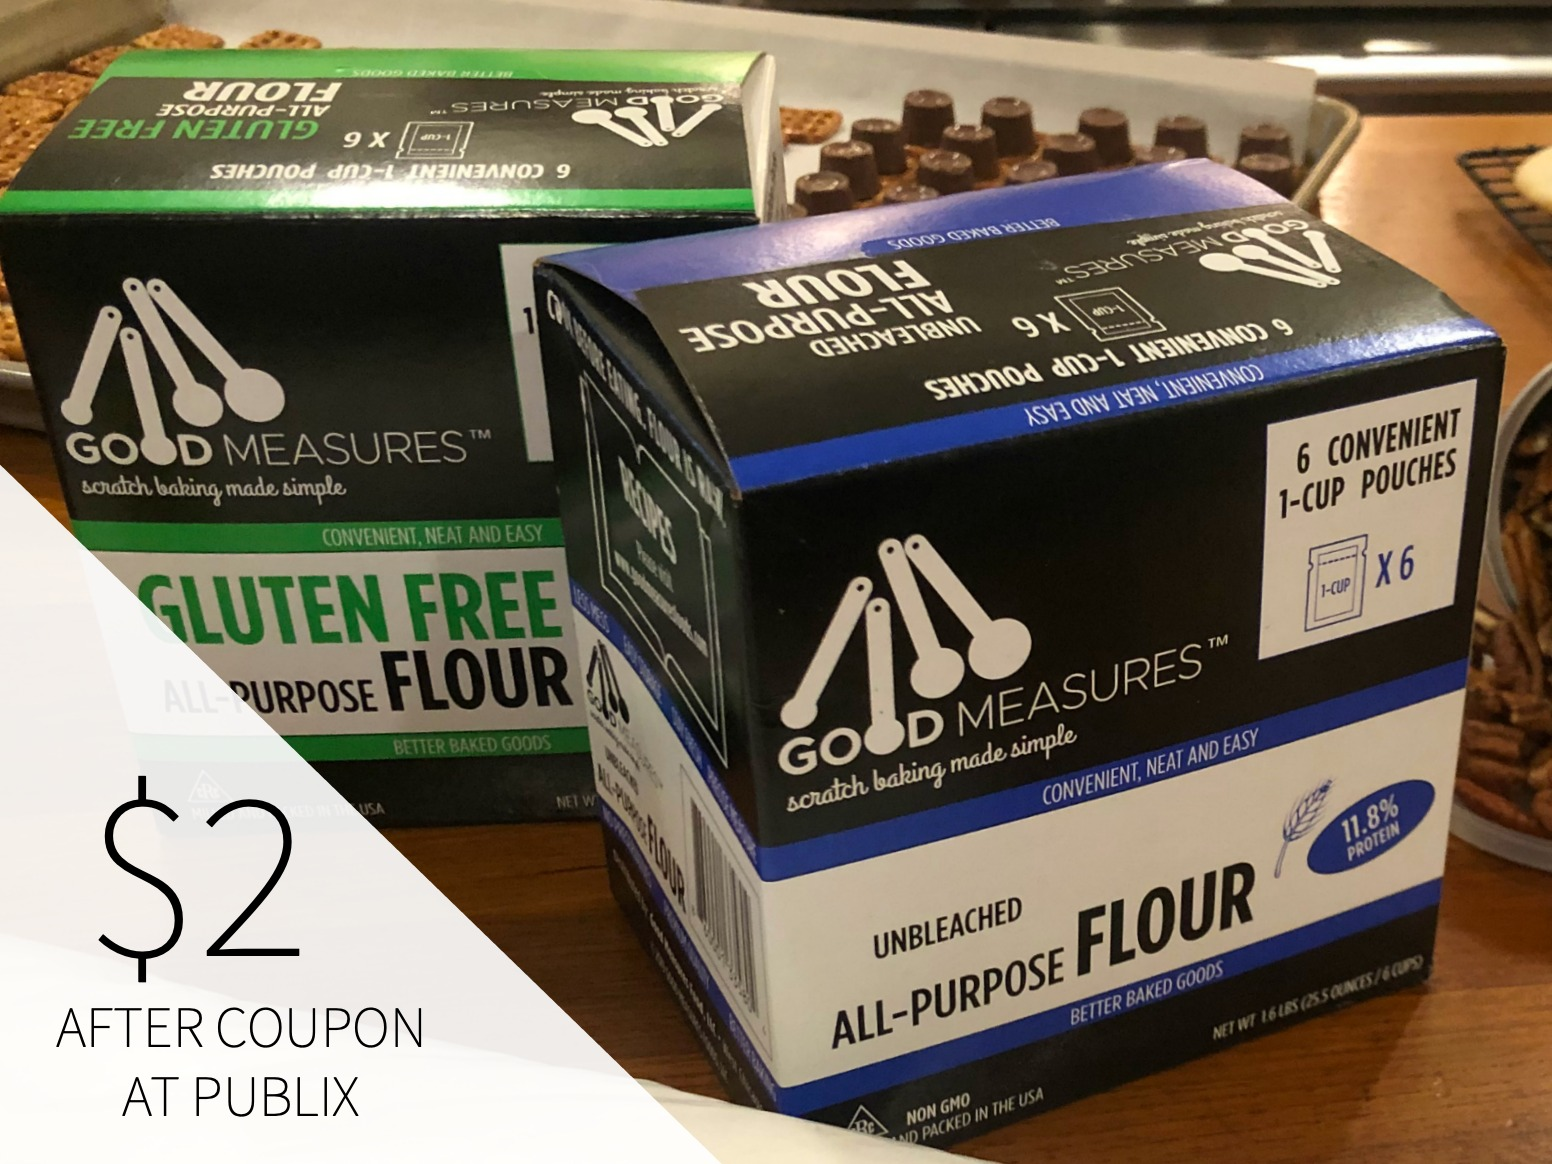 Good Measures All-Purpose Flour Just $2 At Publix (+ Save On Gluten Free Flour) on I Heart Publix 1